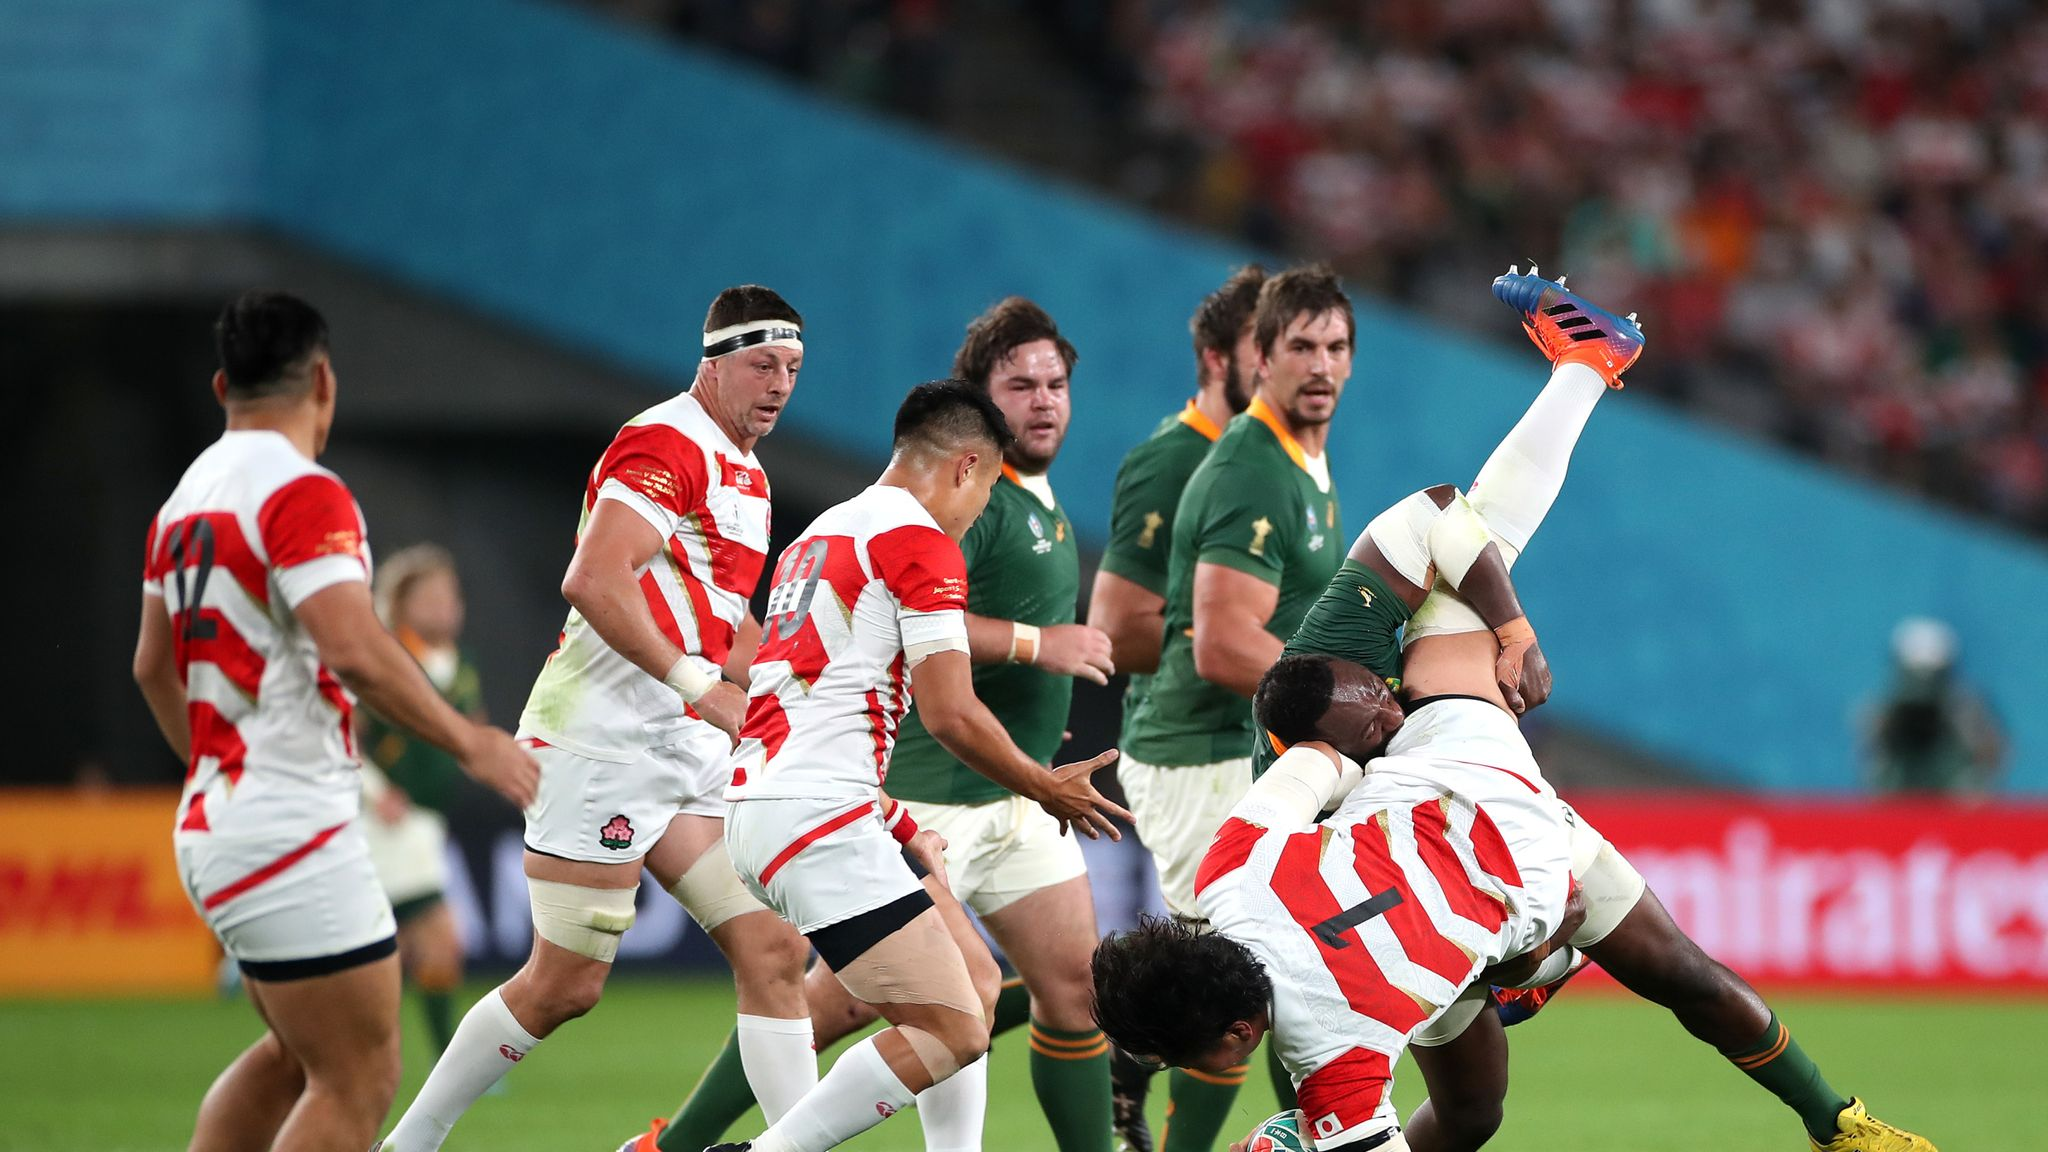 Japan 3-26 South Africa: Rassie Erasmus open to Brave Blossoms joining Rugby Championship